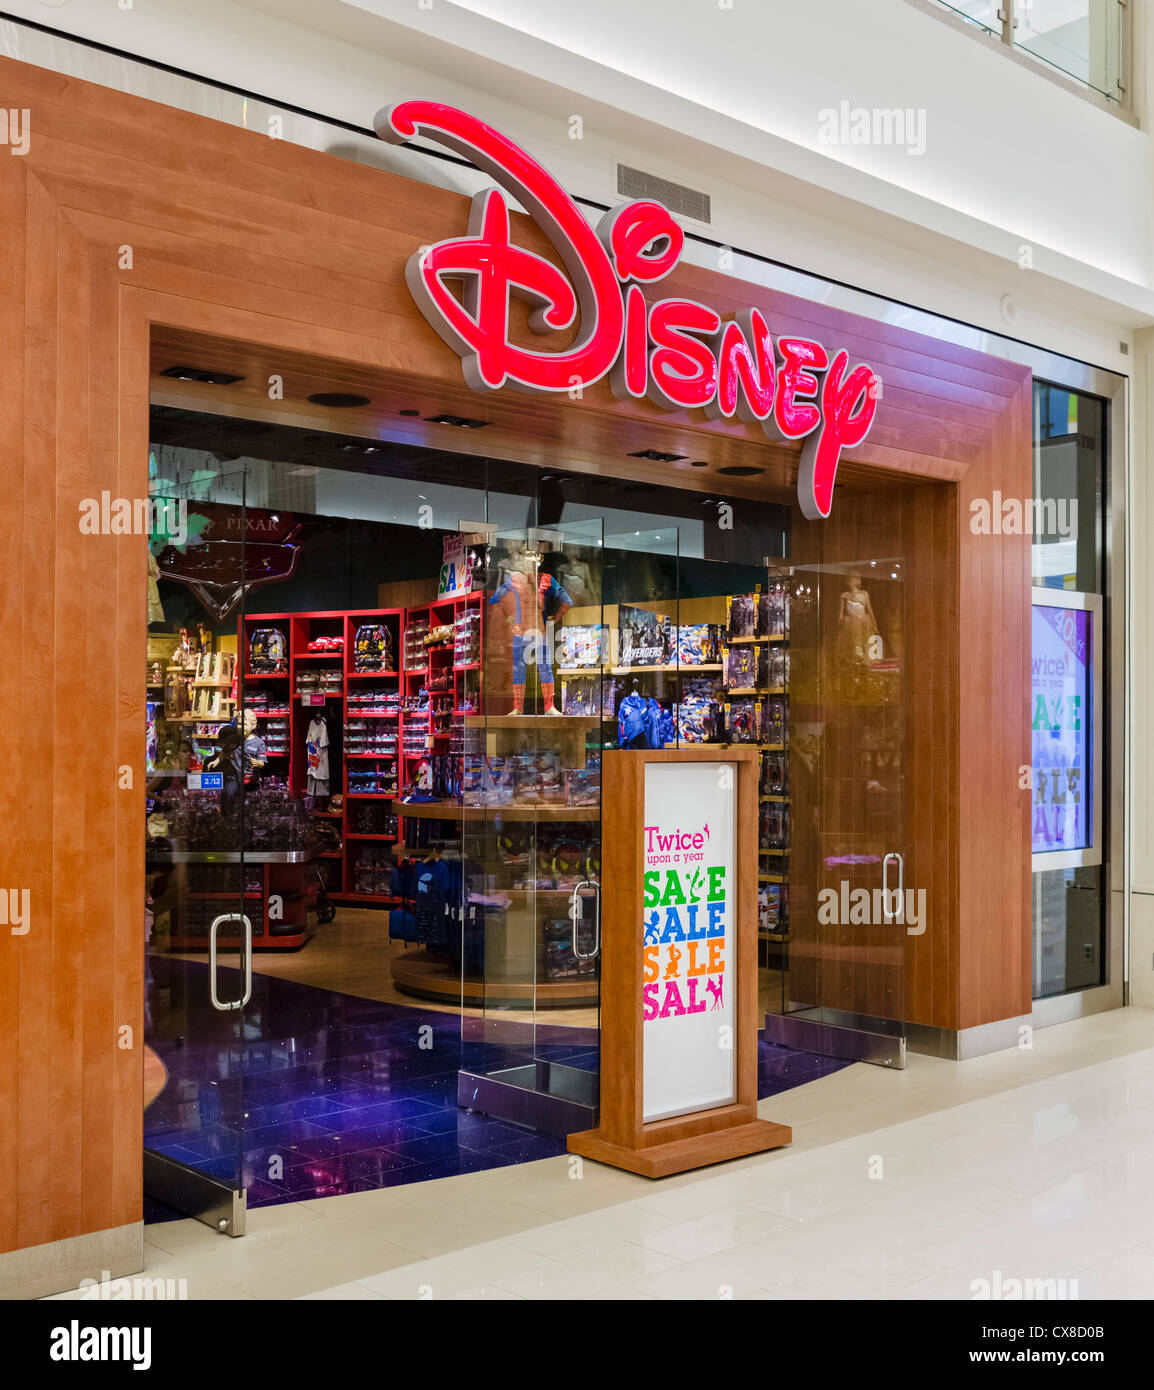 Disney store in the Mall of America, Bloomington ...  Disney store in...